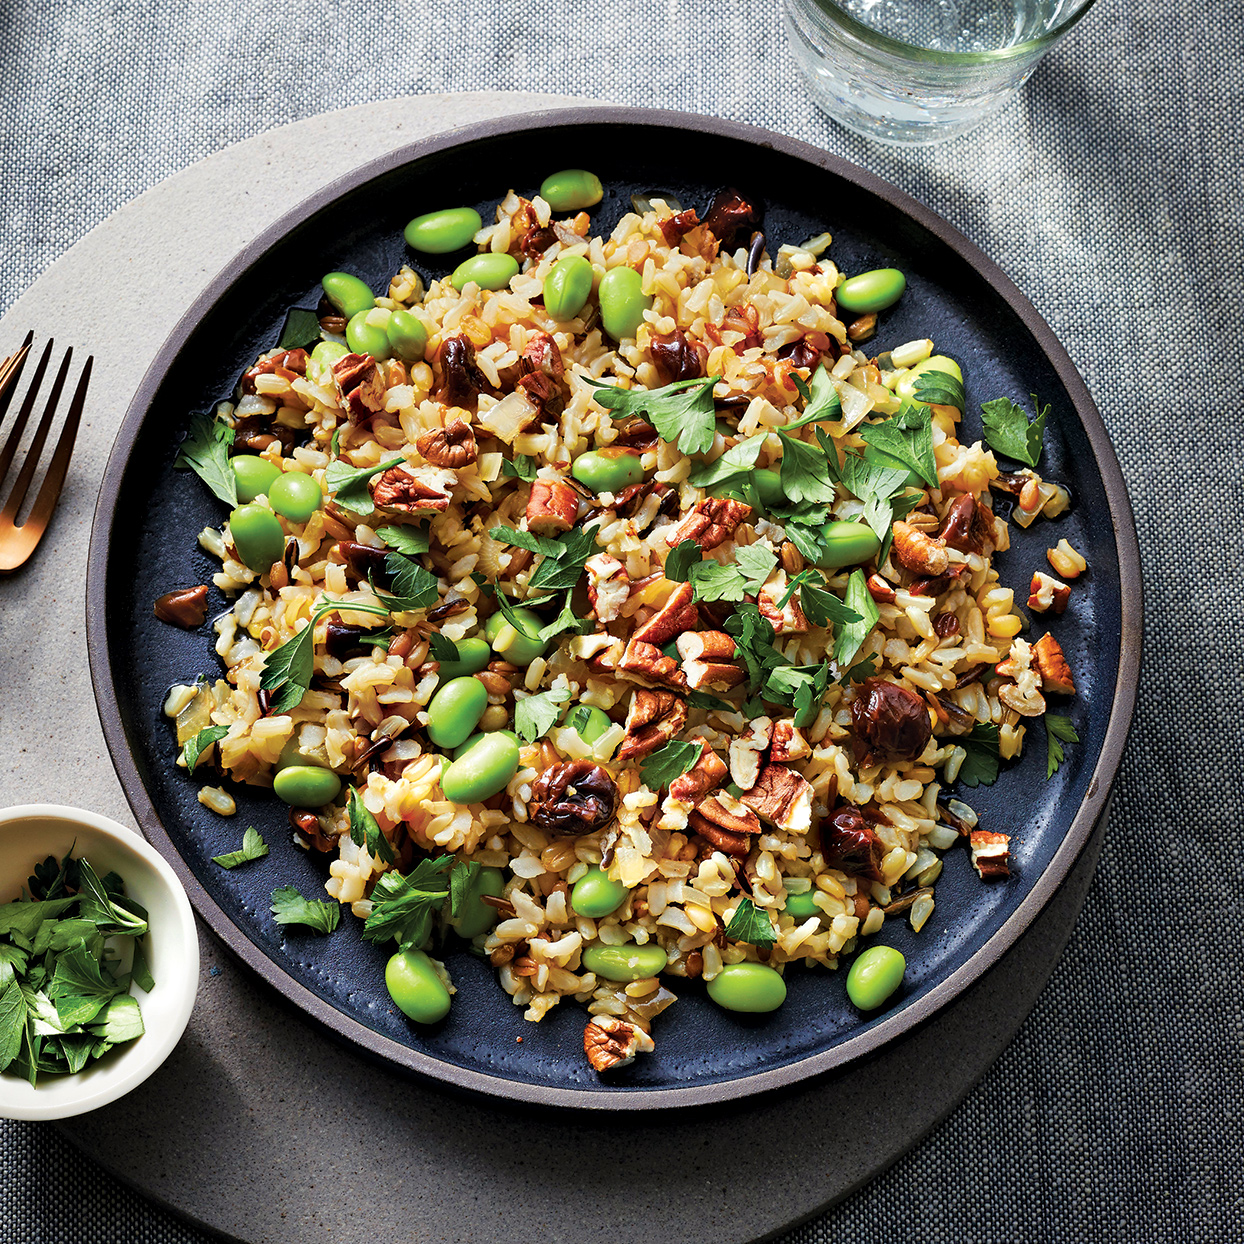 With wild and brown rice, edamame, dried cherries and pecans, this dish boasts varied textures as well as an abundance of nutrients. Wild rice is rich in fiber and protein while brown rice is high in manganese, which helps the body digest fats. Cherries are packed with antioxidants, while pecans are loaded with healthy unsaturated fat. Source: Everyday Slow Cooker